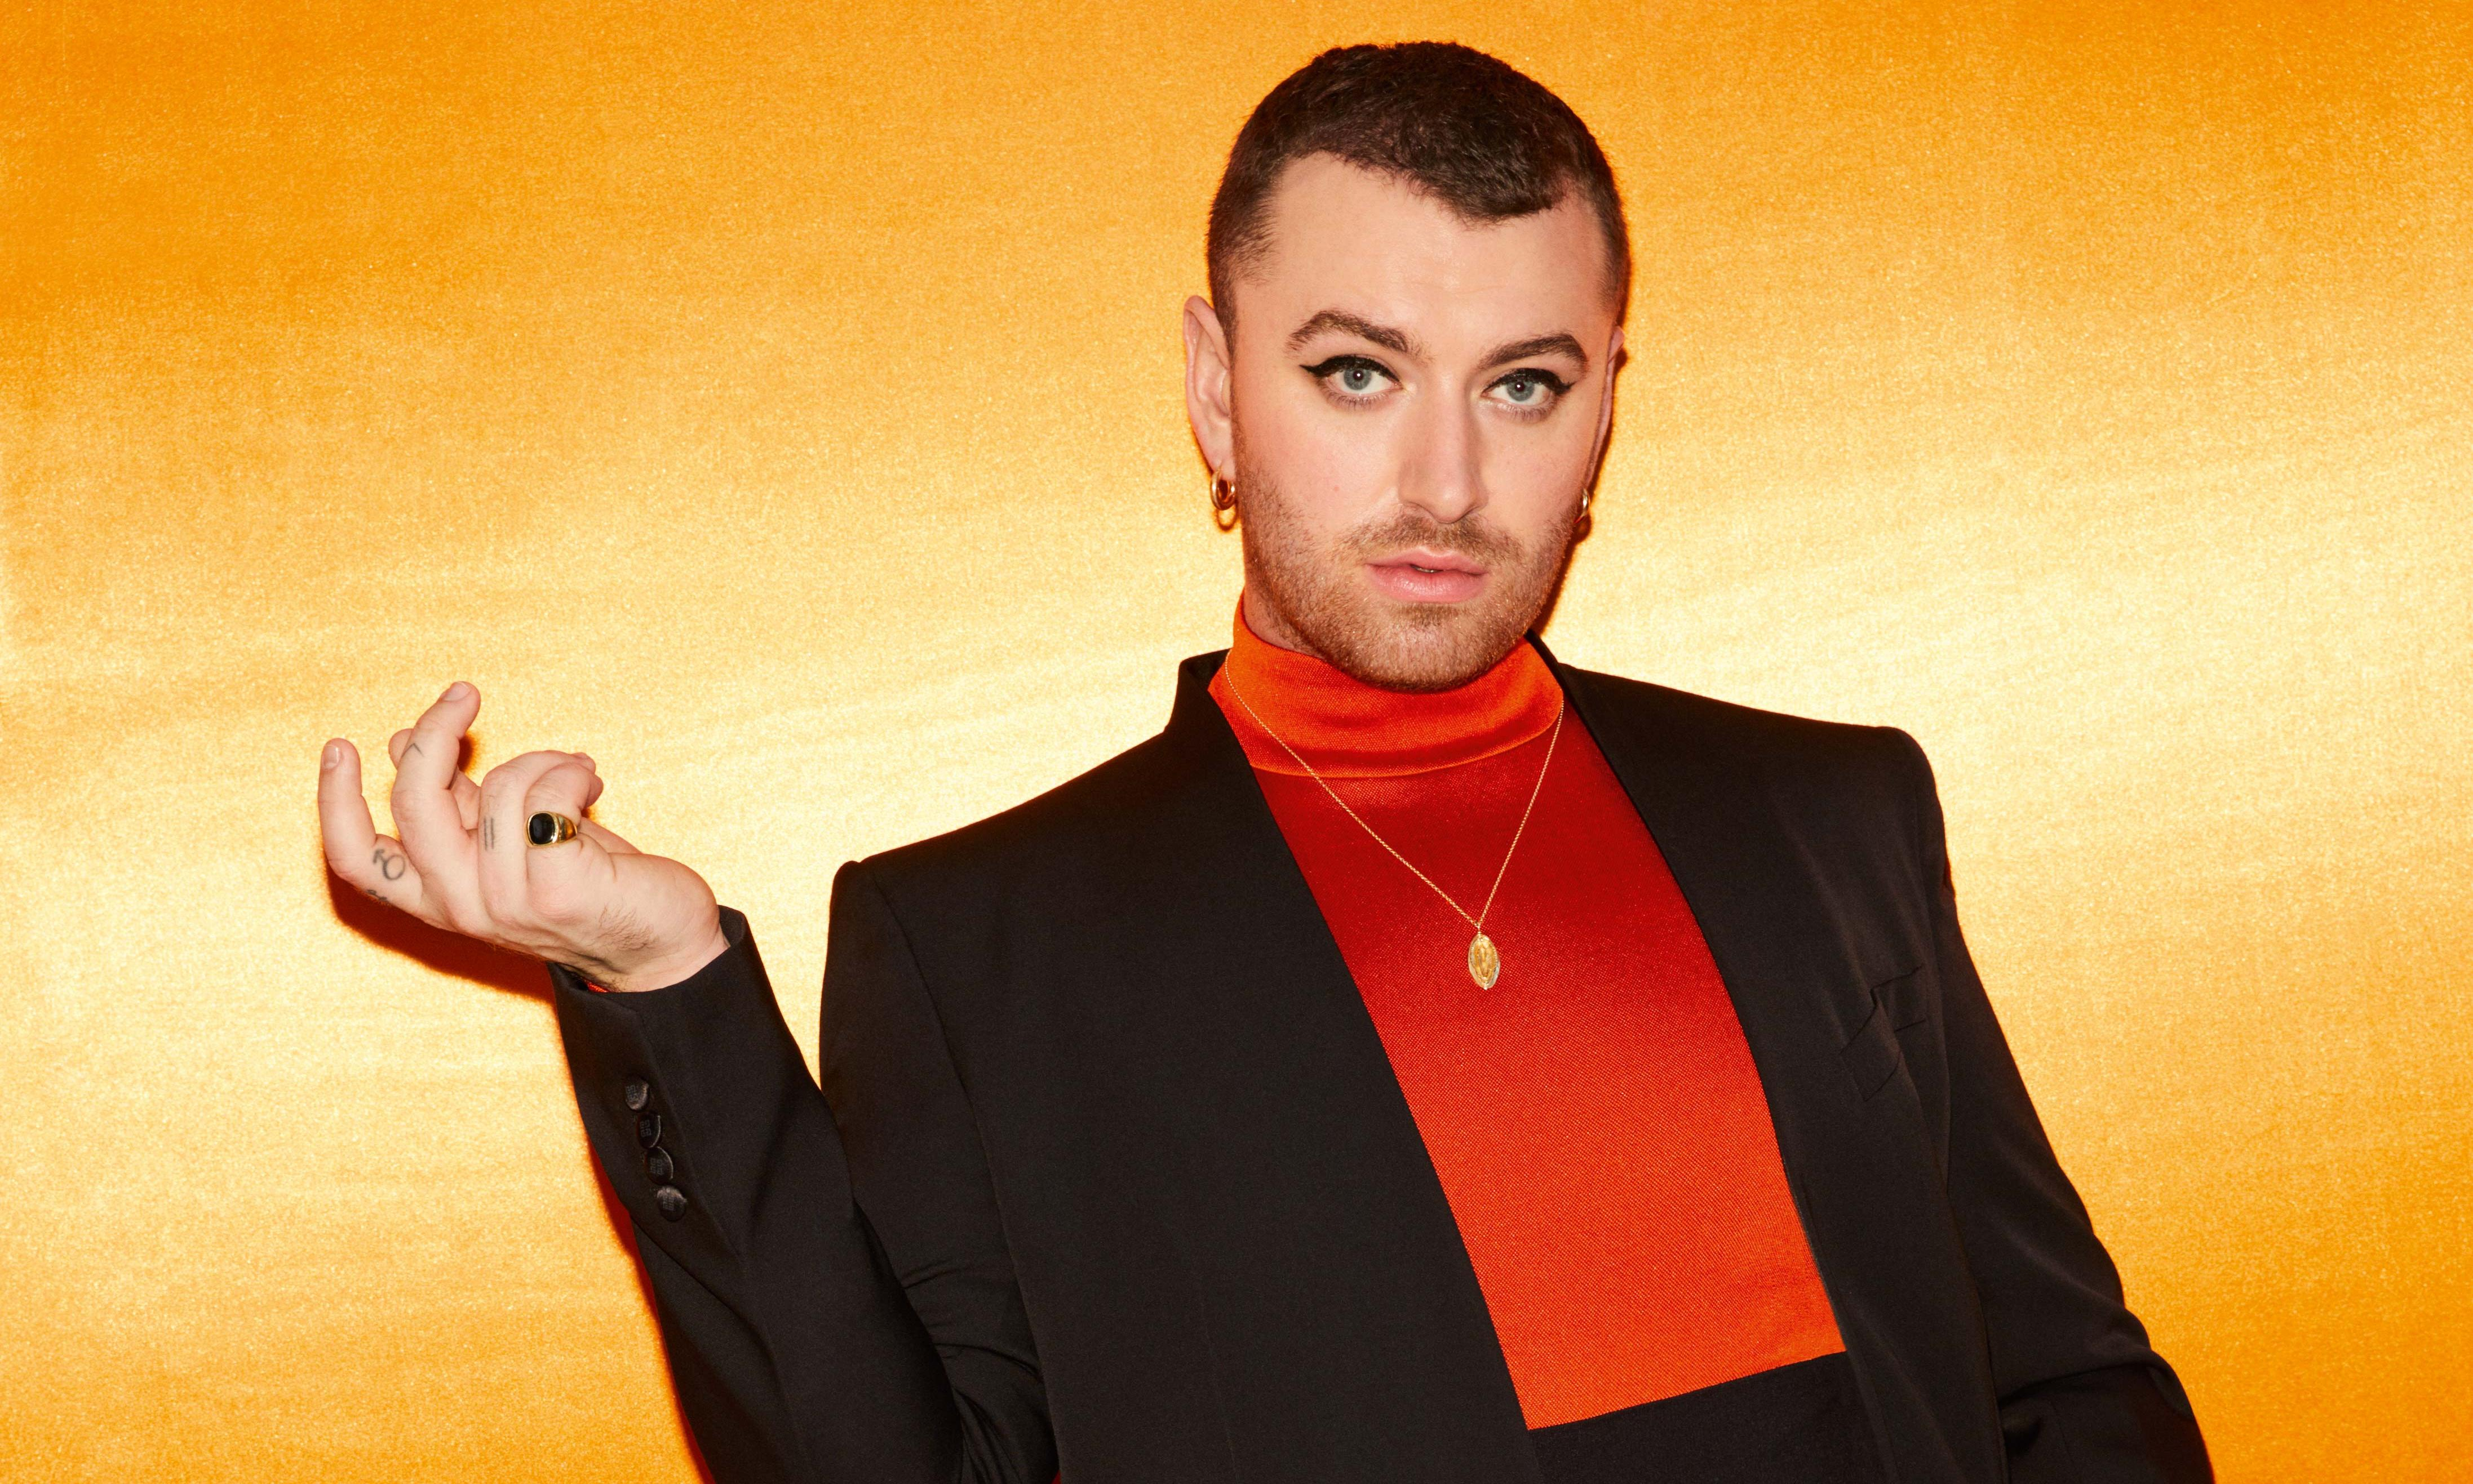 Tracks of the week reviewed: Sam Smith, Pussycat Dolls, EOB